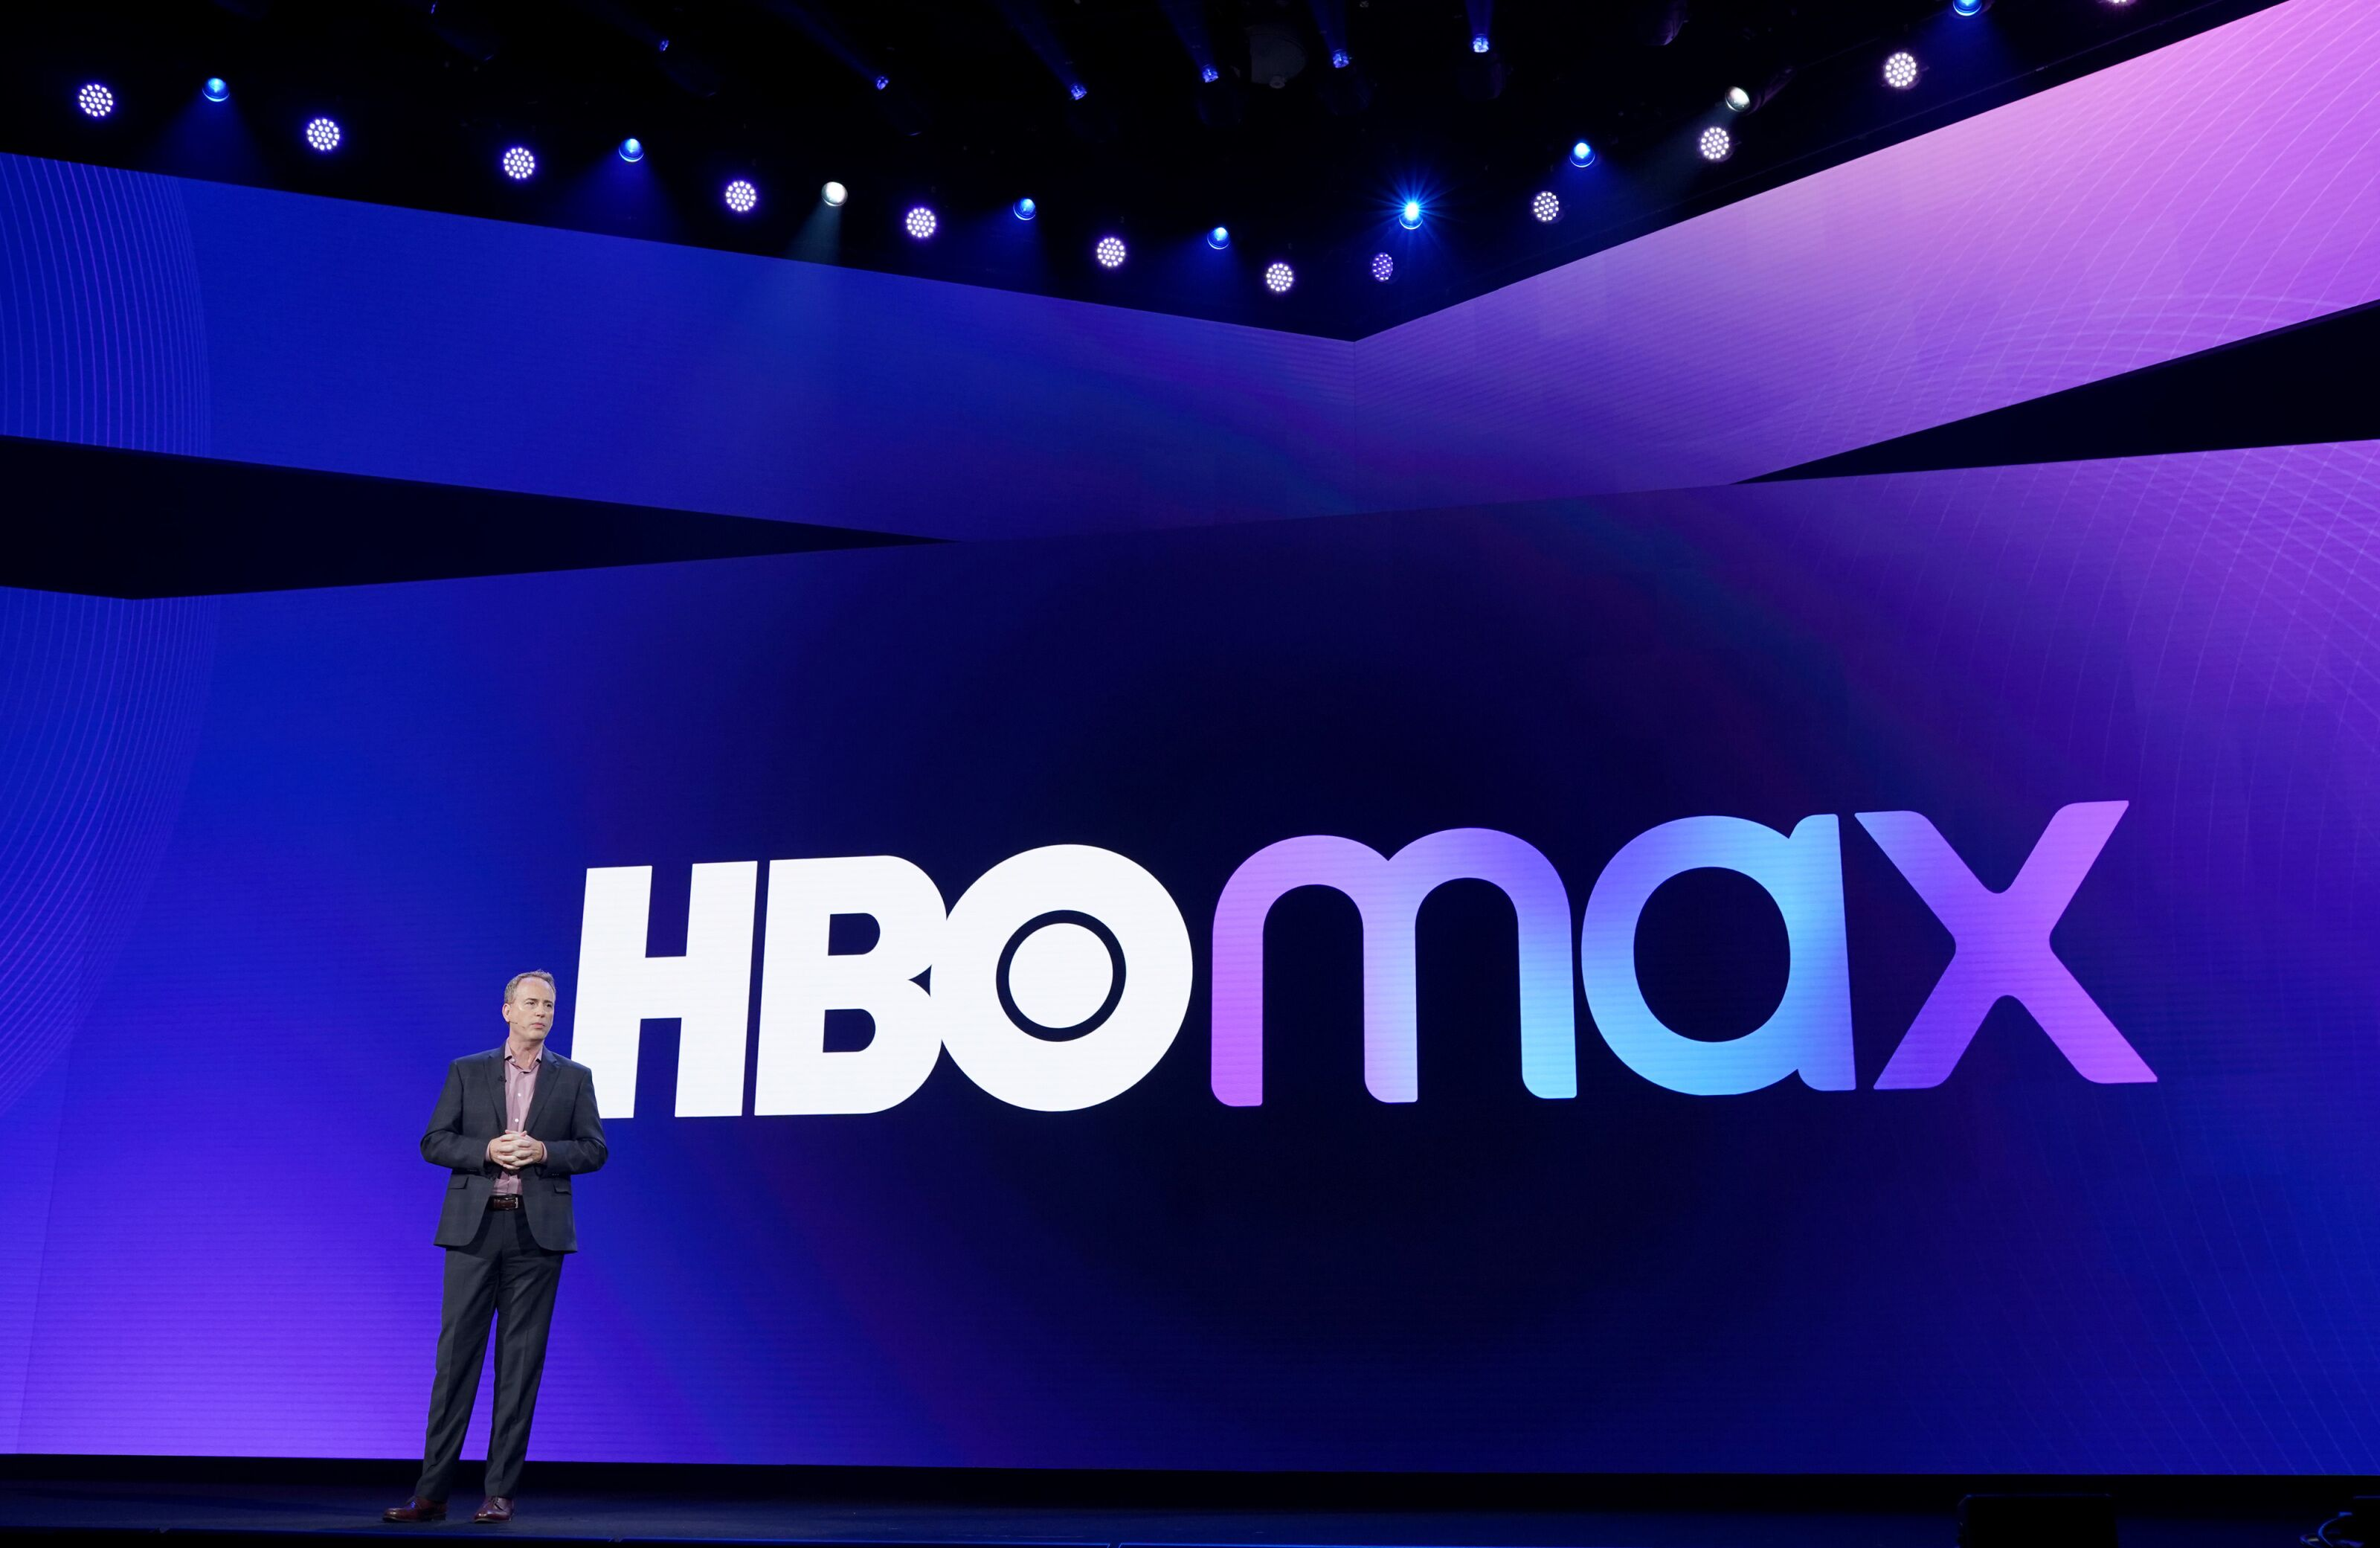 Podcasts may give HBO Max the edge in the streaming wars